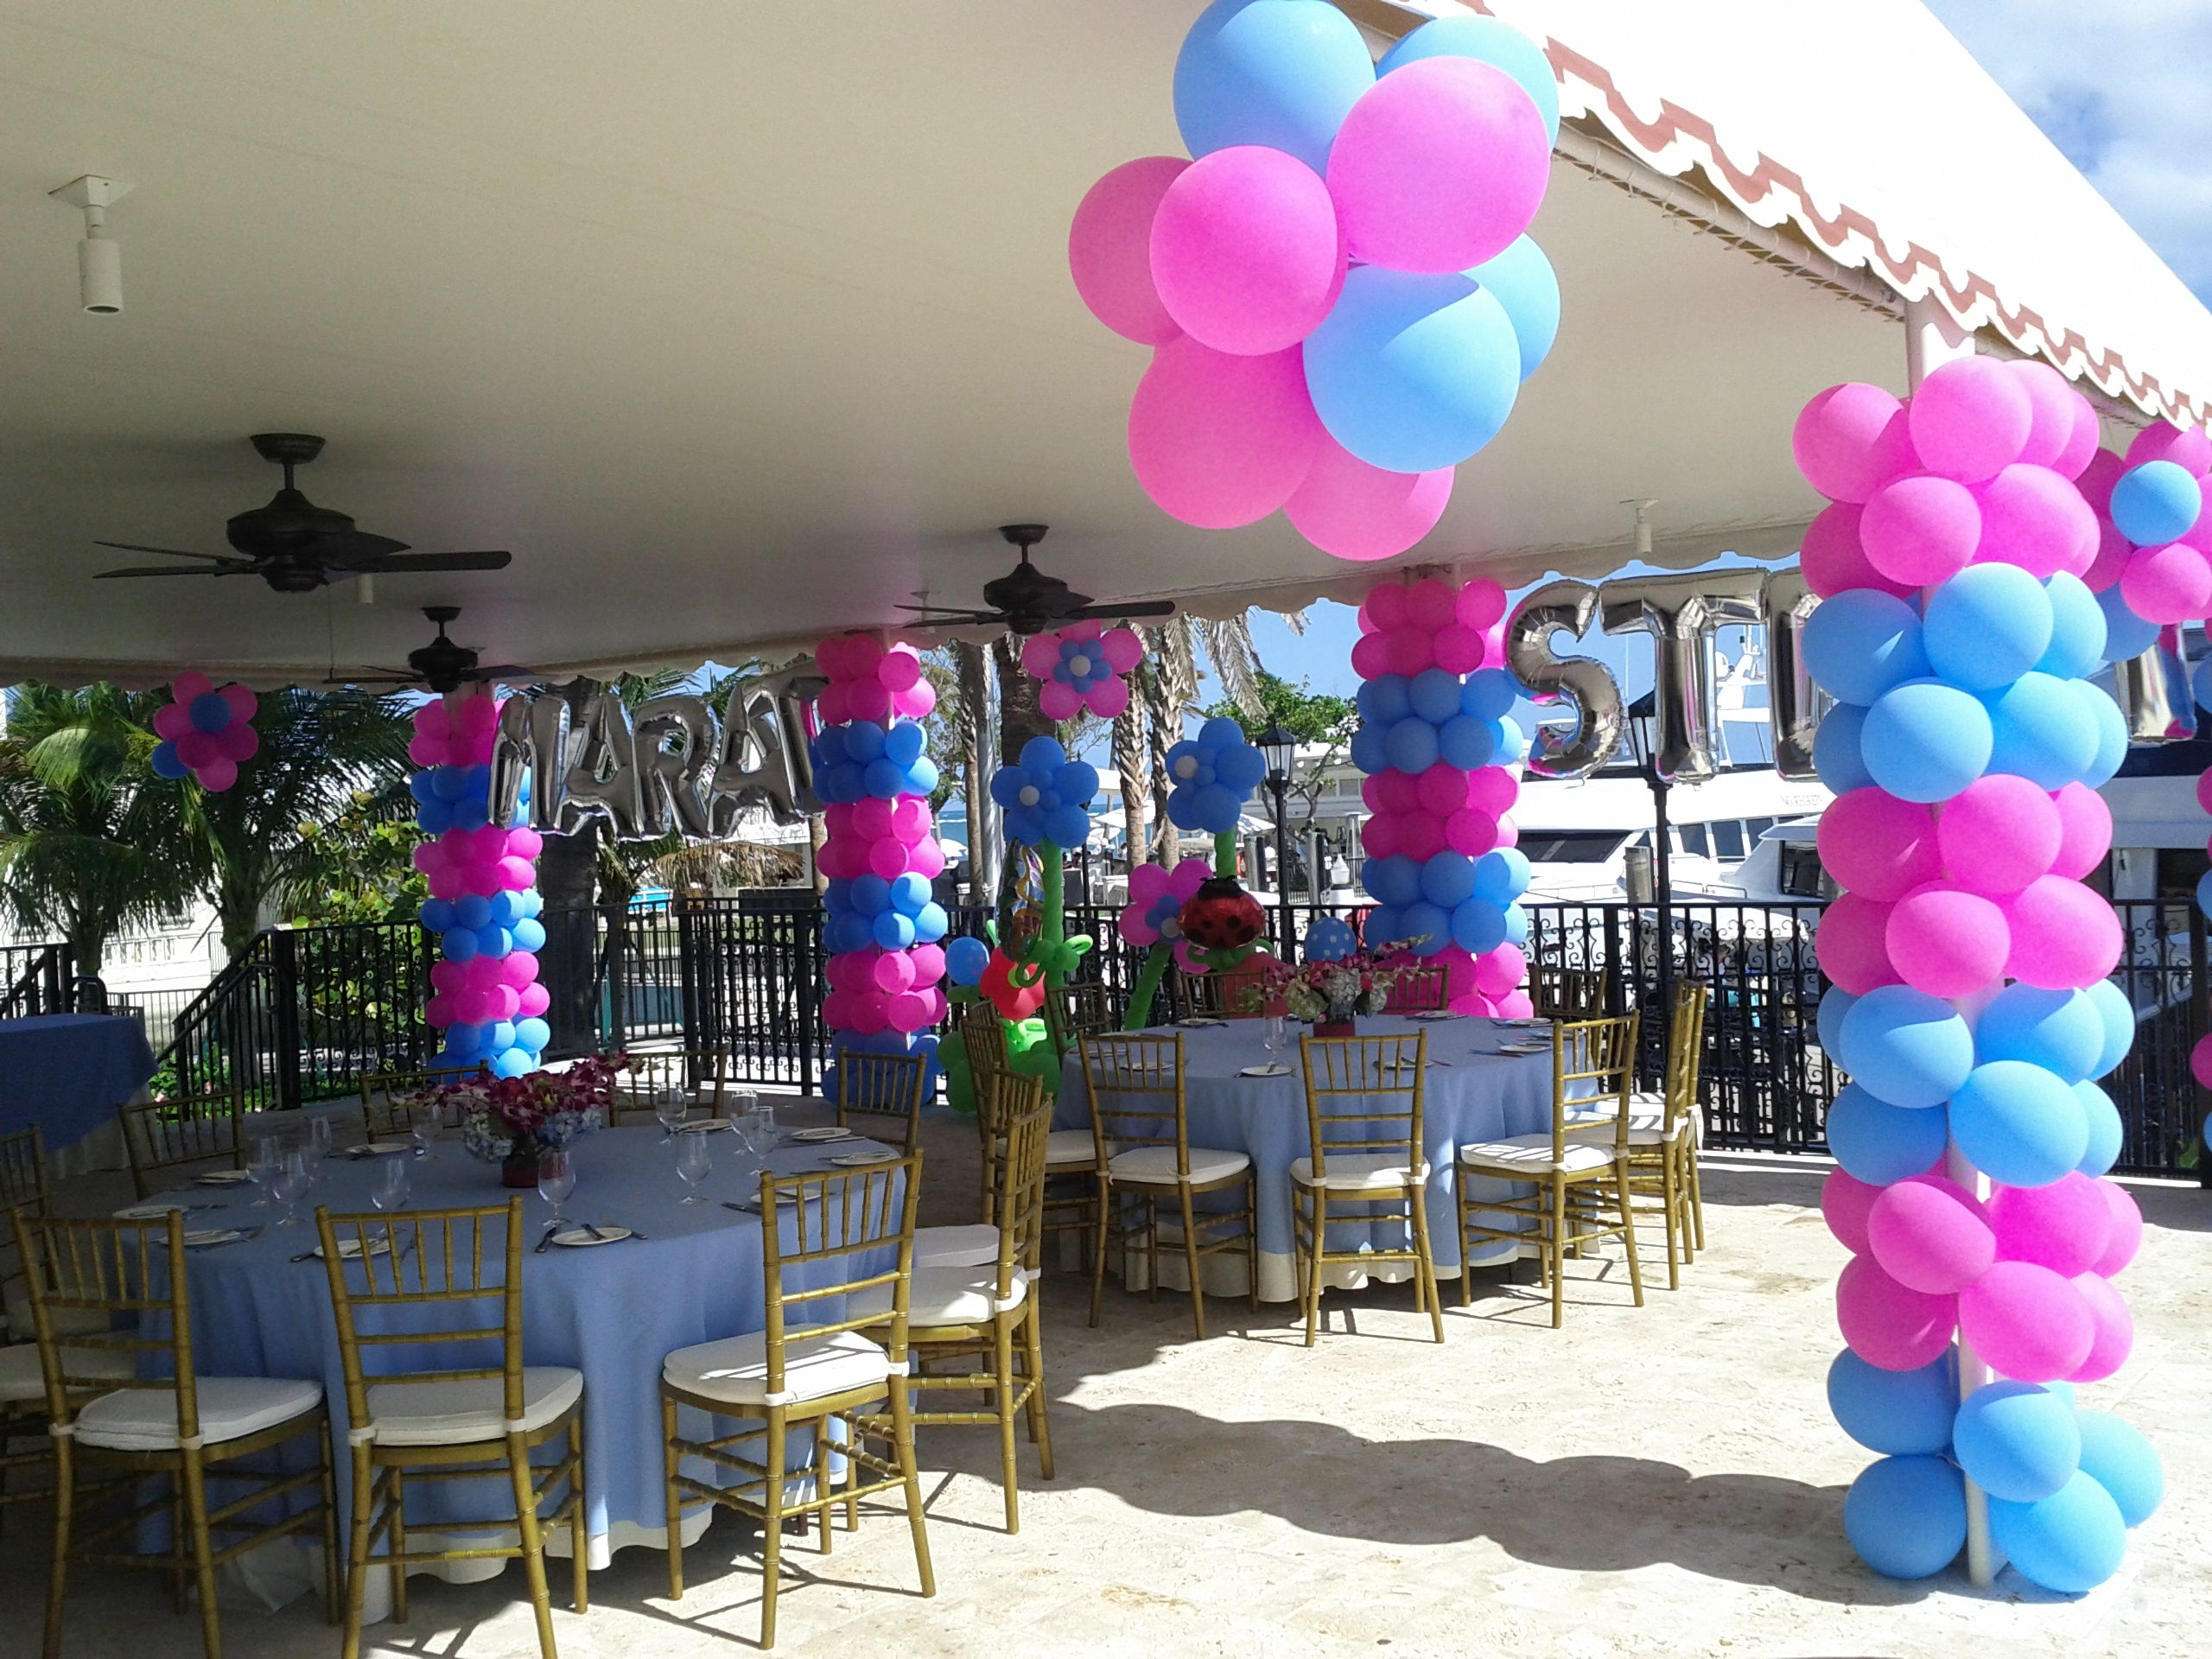 Balloon column balloon flowers balloon ceiling decor balloon name